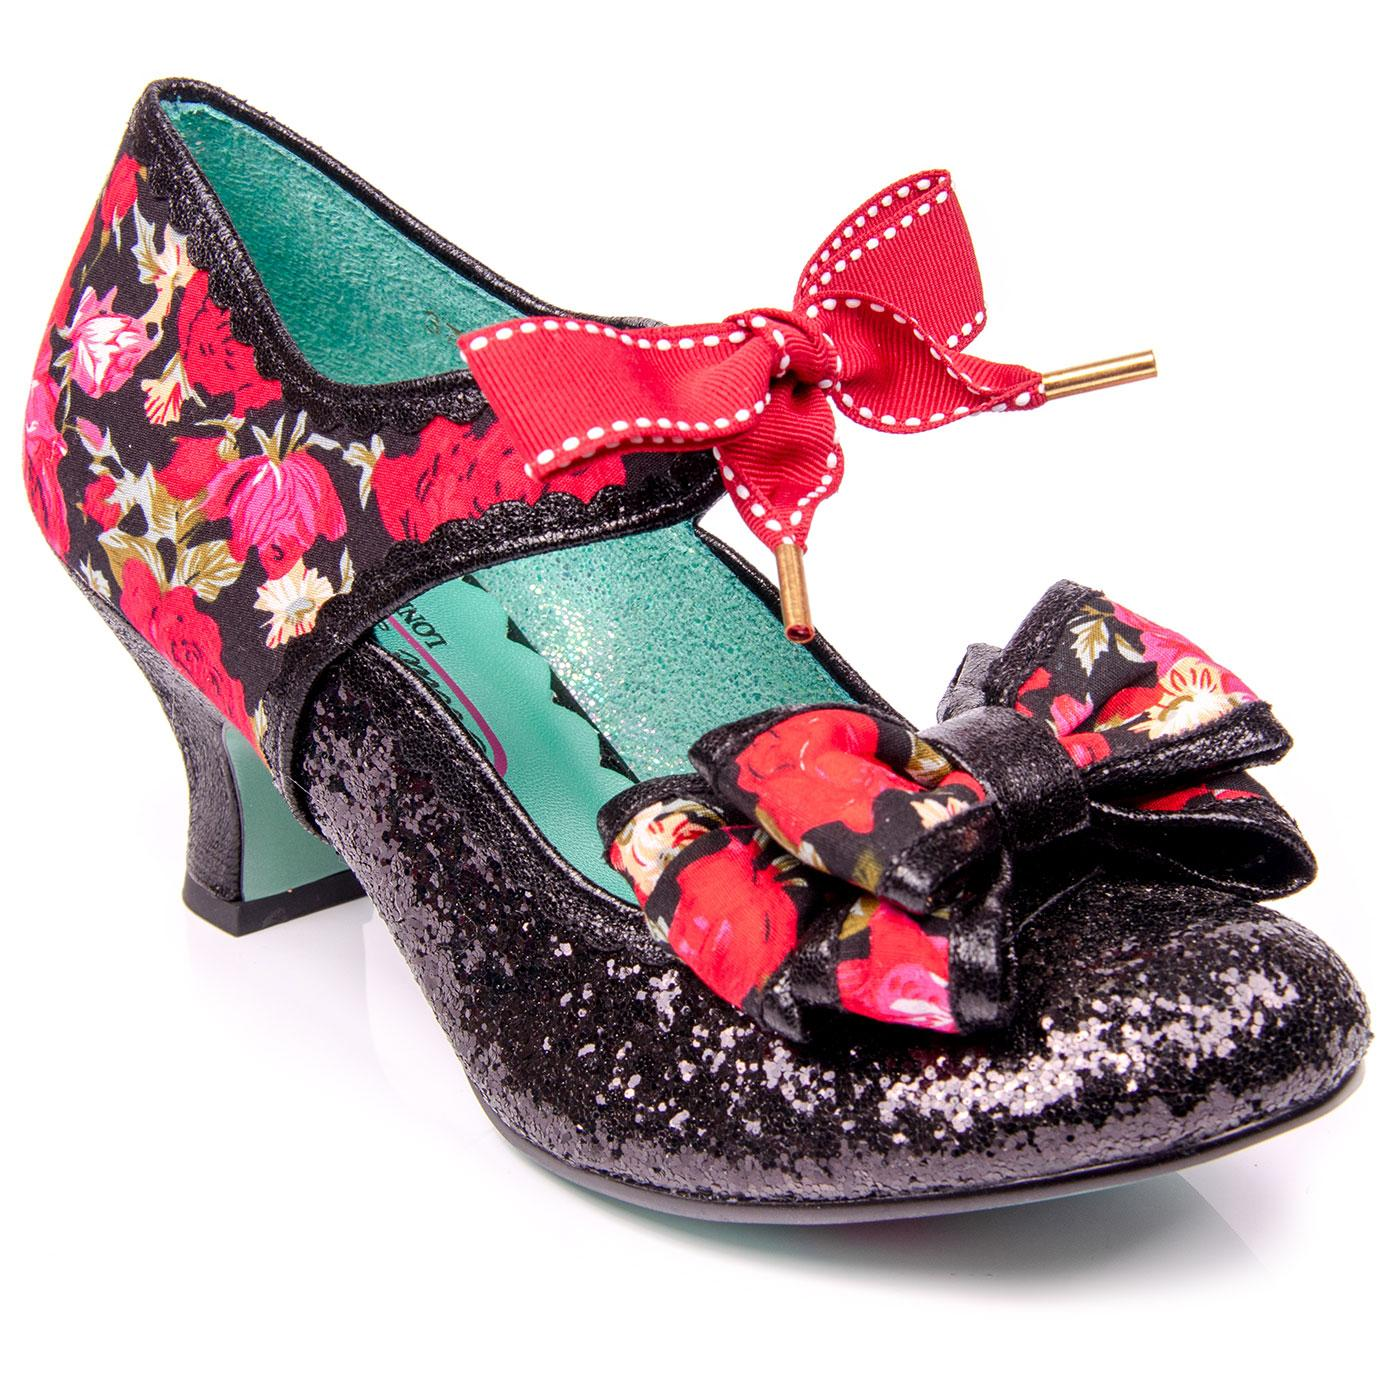 Apple Spice POETIC LICENCE Floral Glitter Heels B